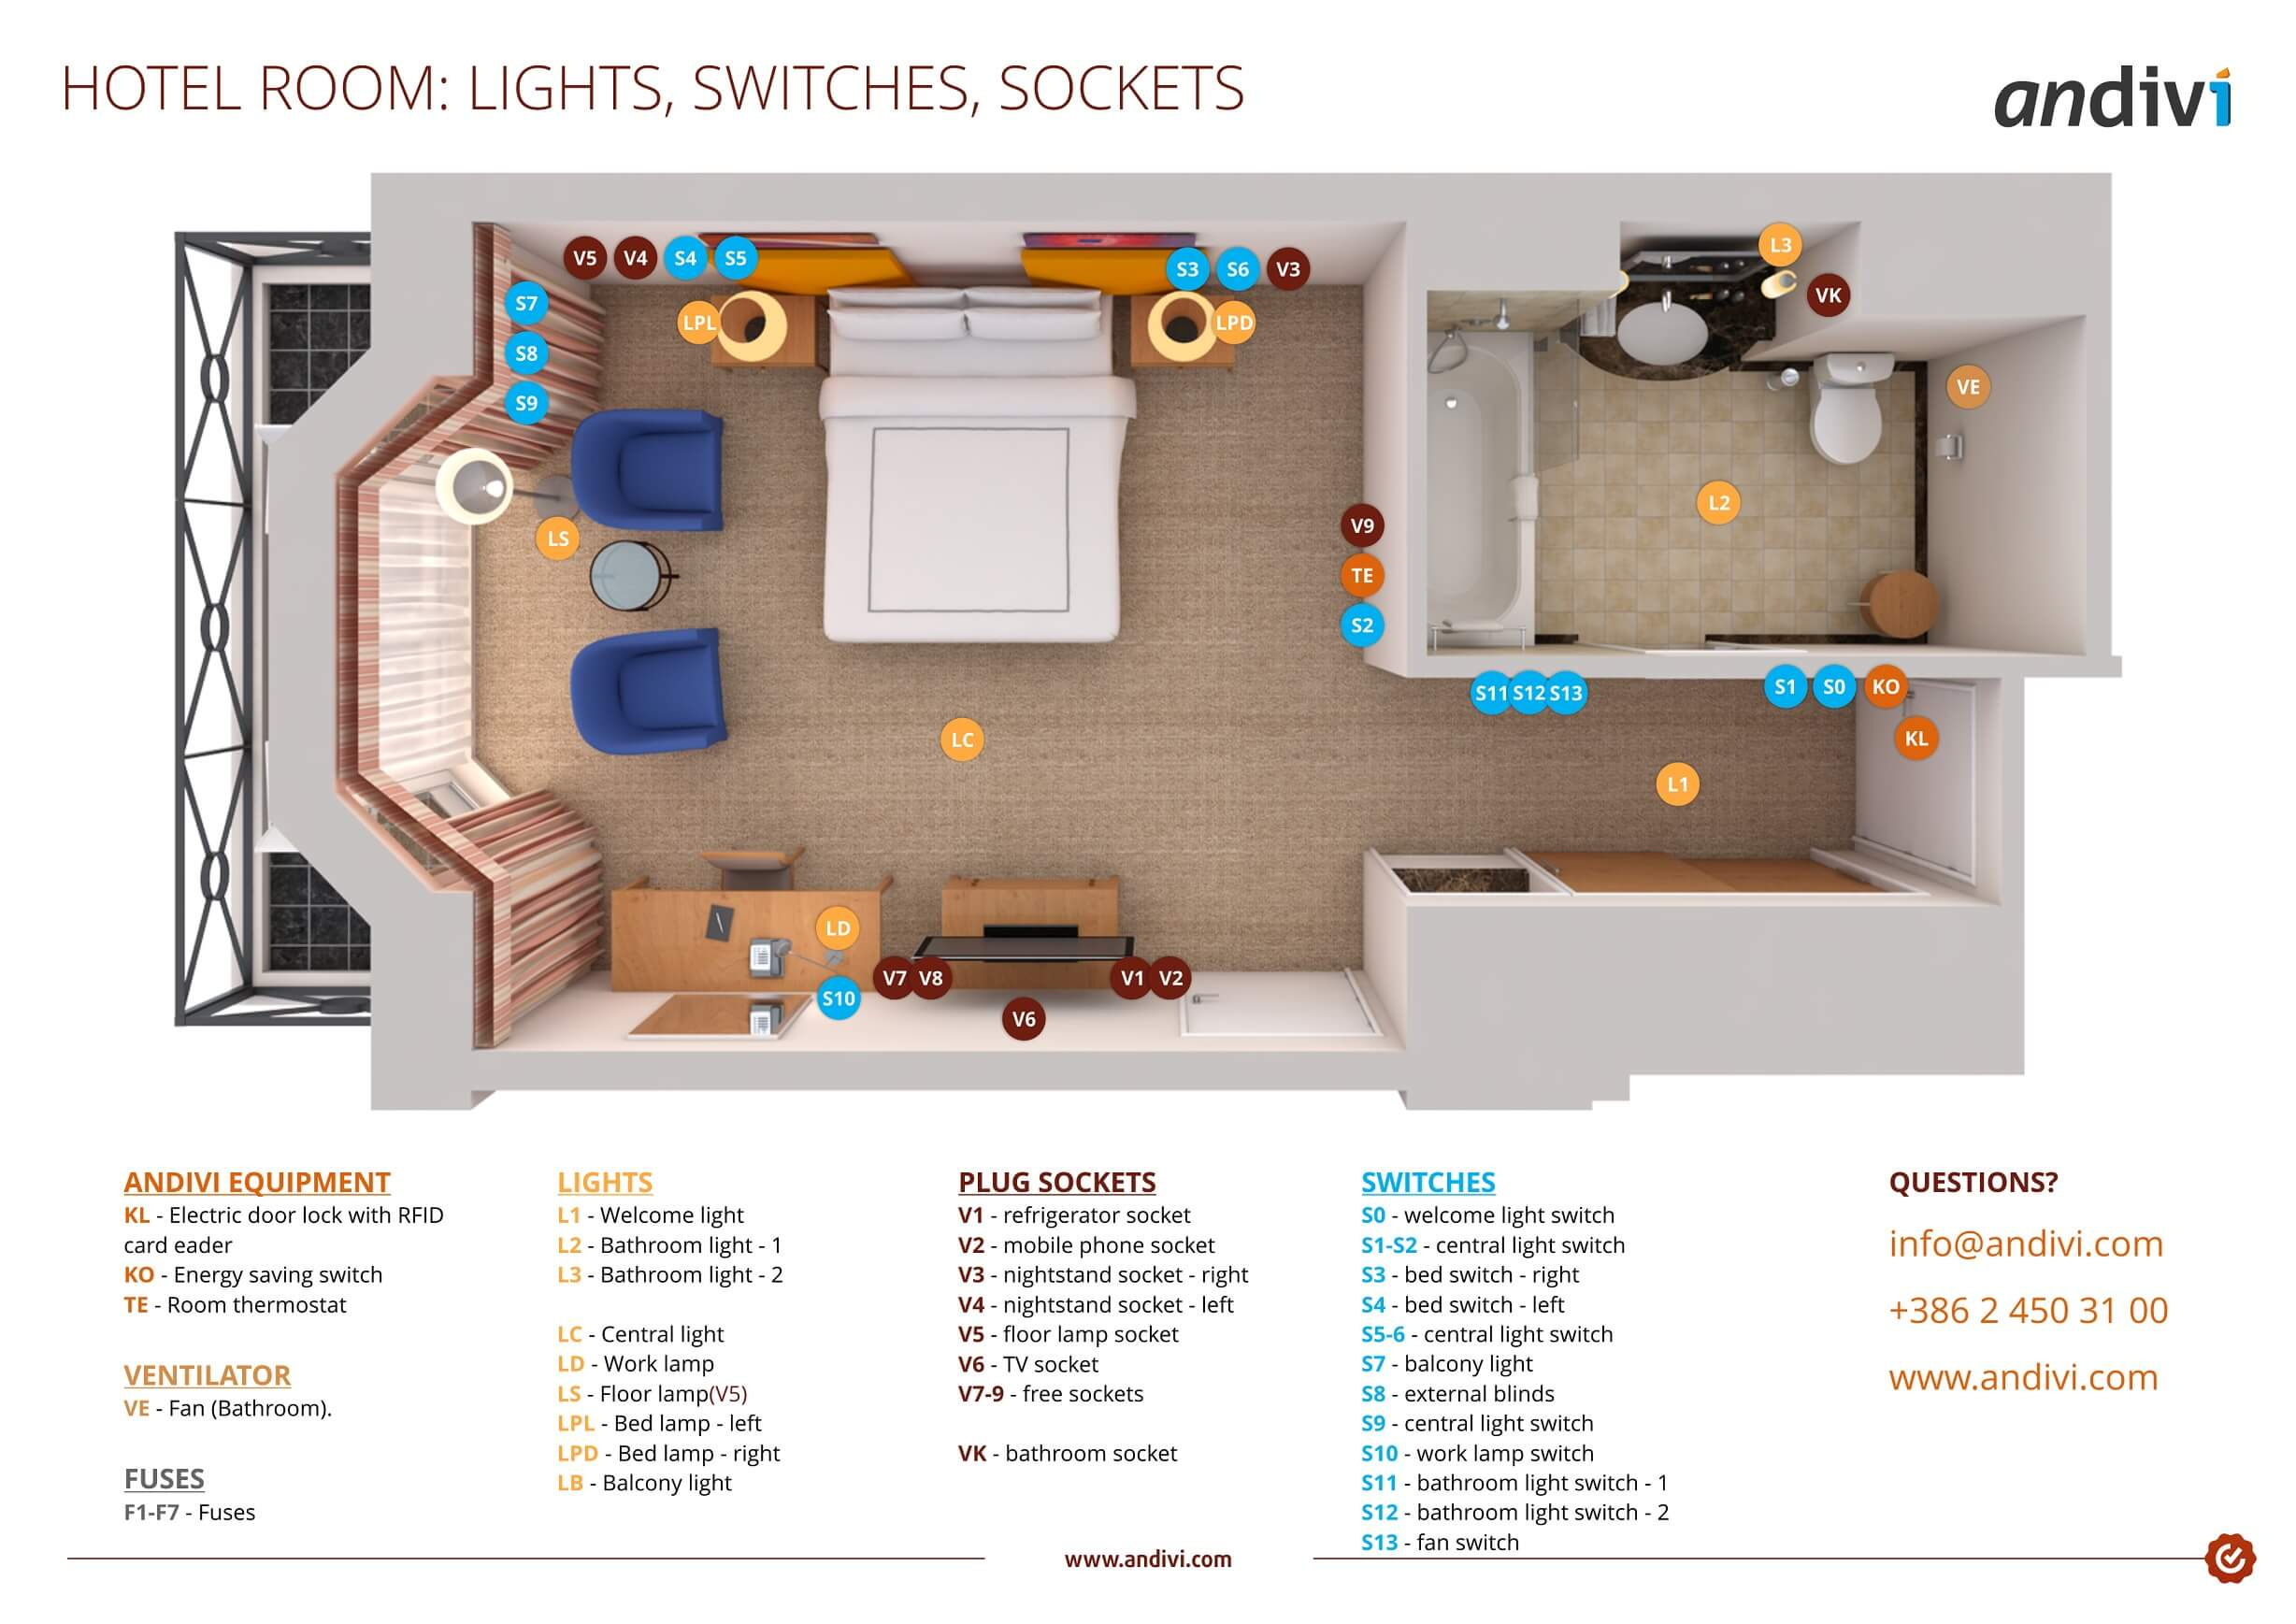 Electrical Installations Layout Plan For A Typical Hotel Wiring Diagram Further Motion Sensor Light Additionally Installation Room Lights Sockets Switches